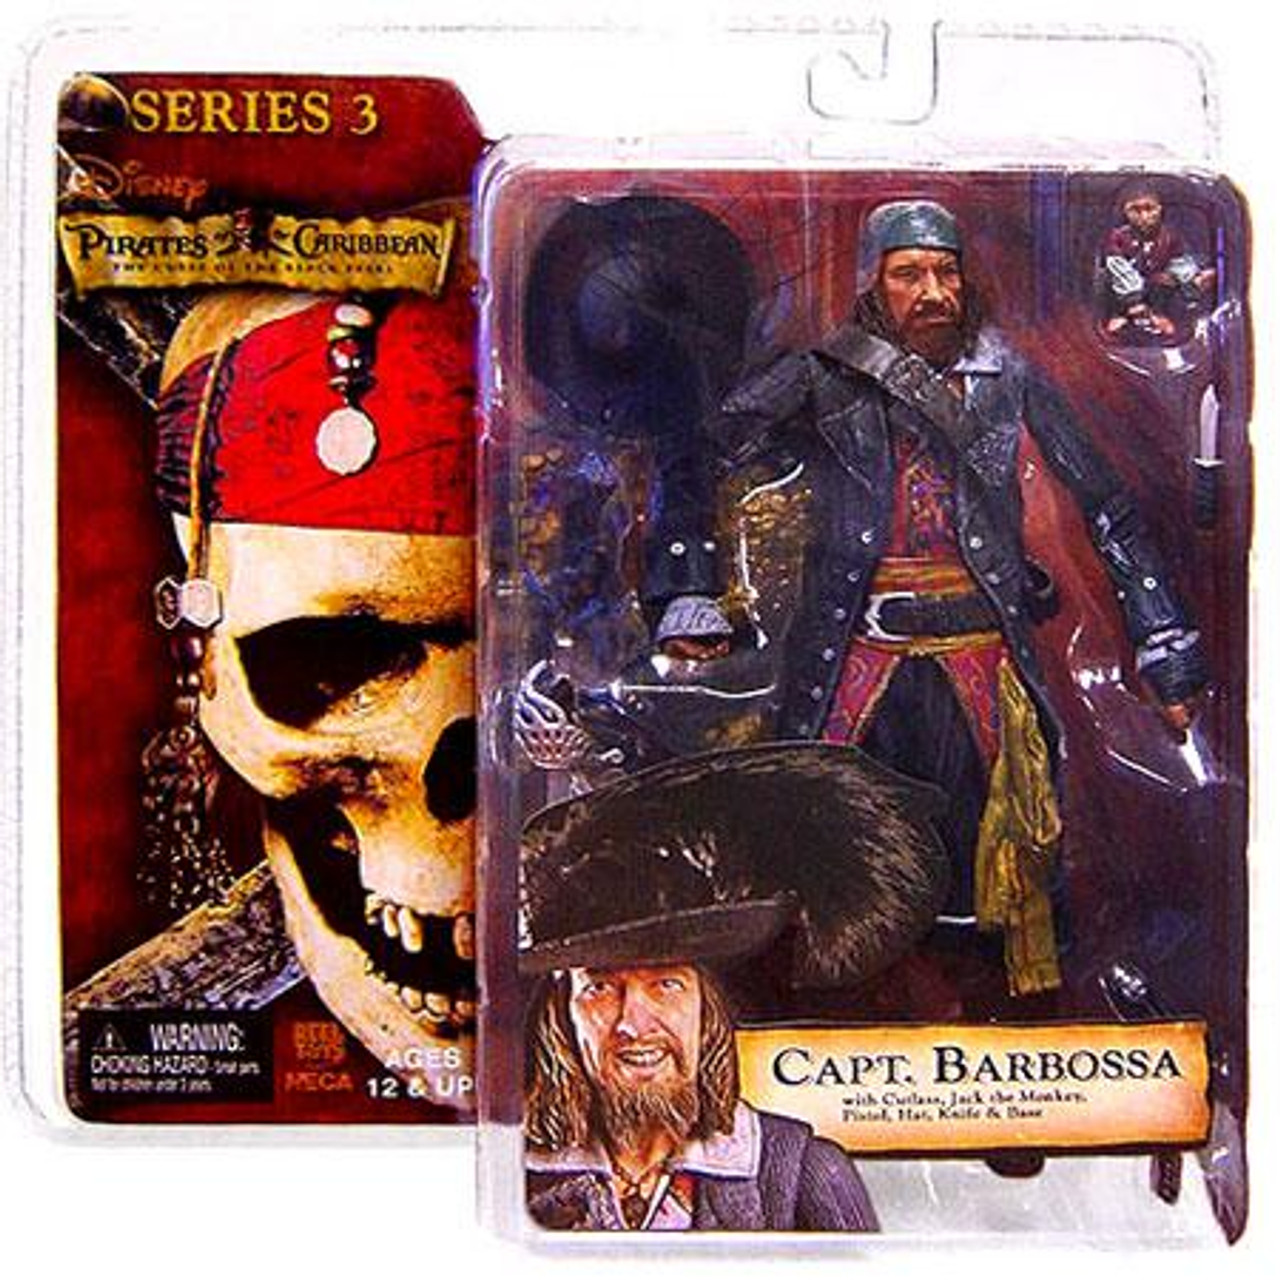 NECA Pirates of the Caribbean Curse of the Black Pearl Series 3 Captain Barbossa Action Figure